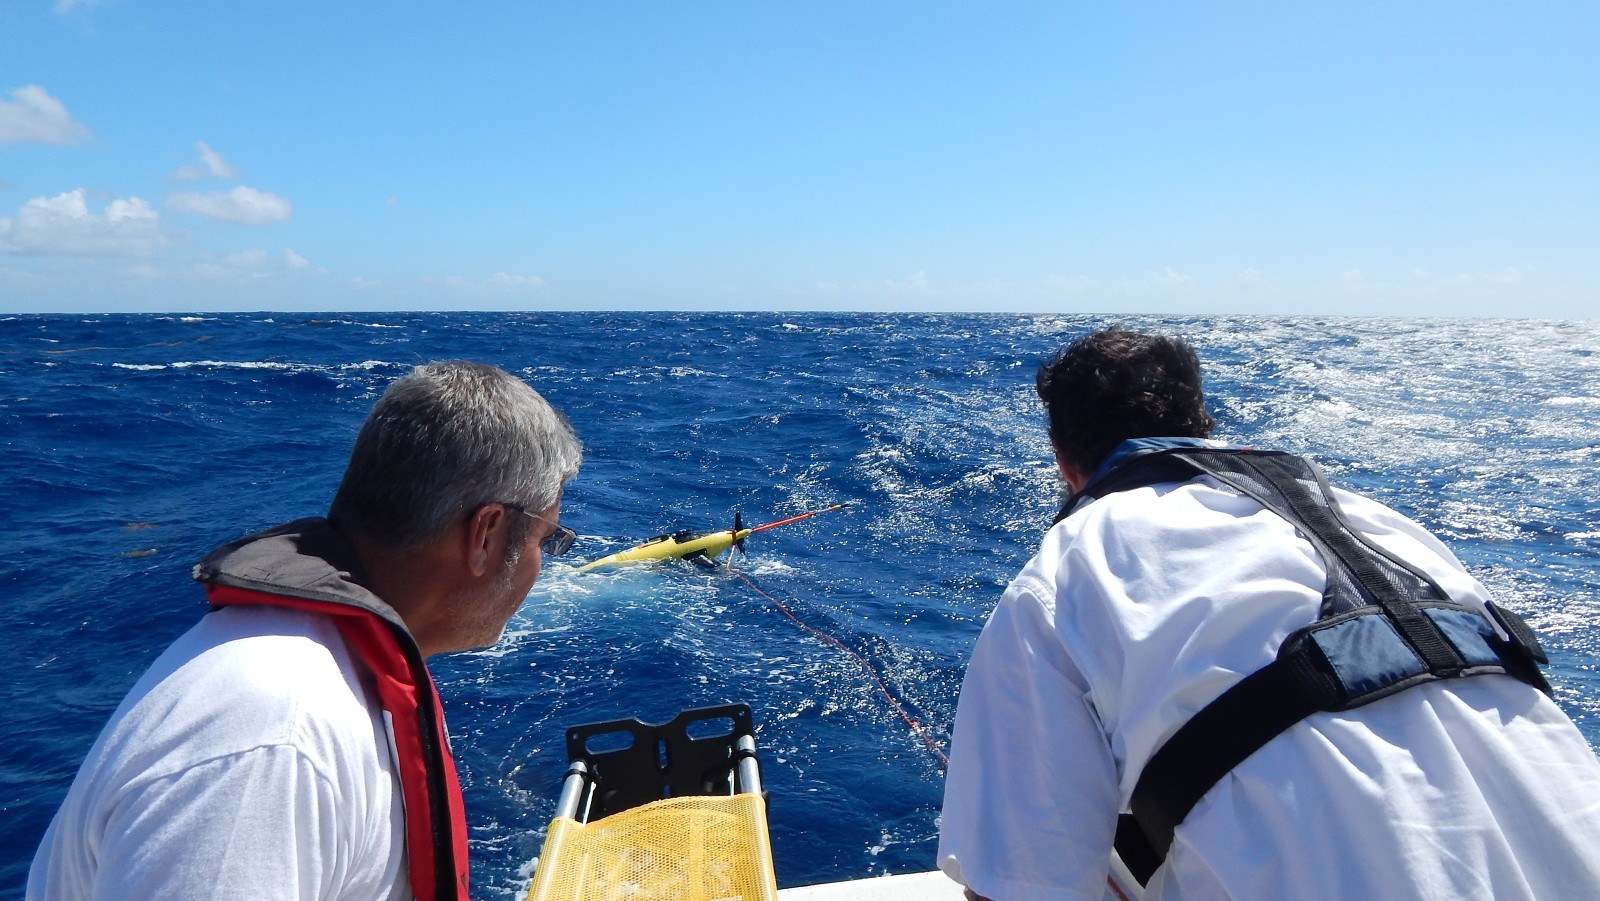 Professor Julio Morell of The University of Puerto Rico at Mayaguez and AOML's Grant Rawson, watch the glider drift away after deploying it on February 6, 2015. Image credit: NOAA